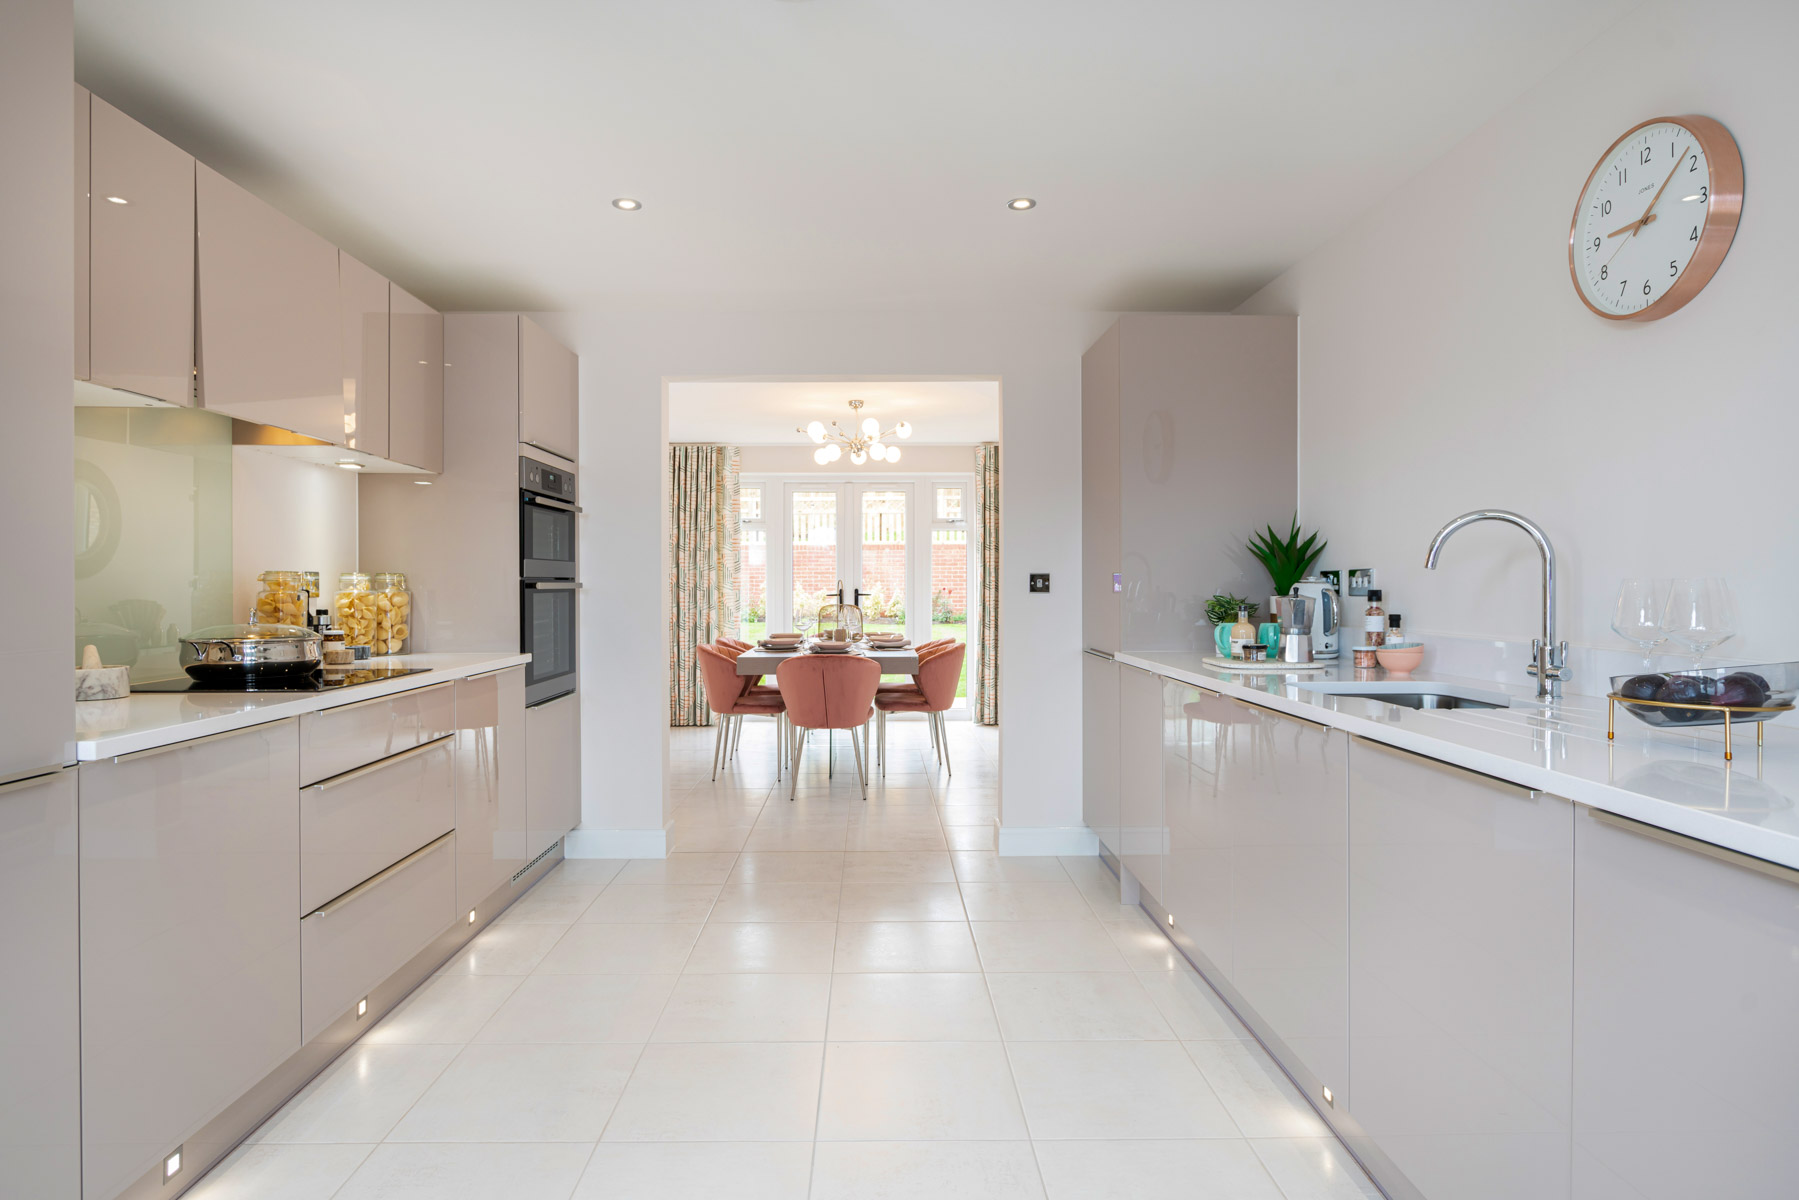 TW Exeter - Cranbrook - Marford example kitchen 2